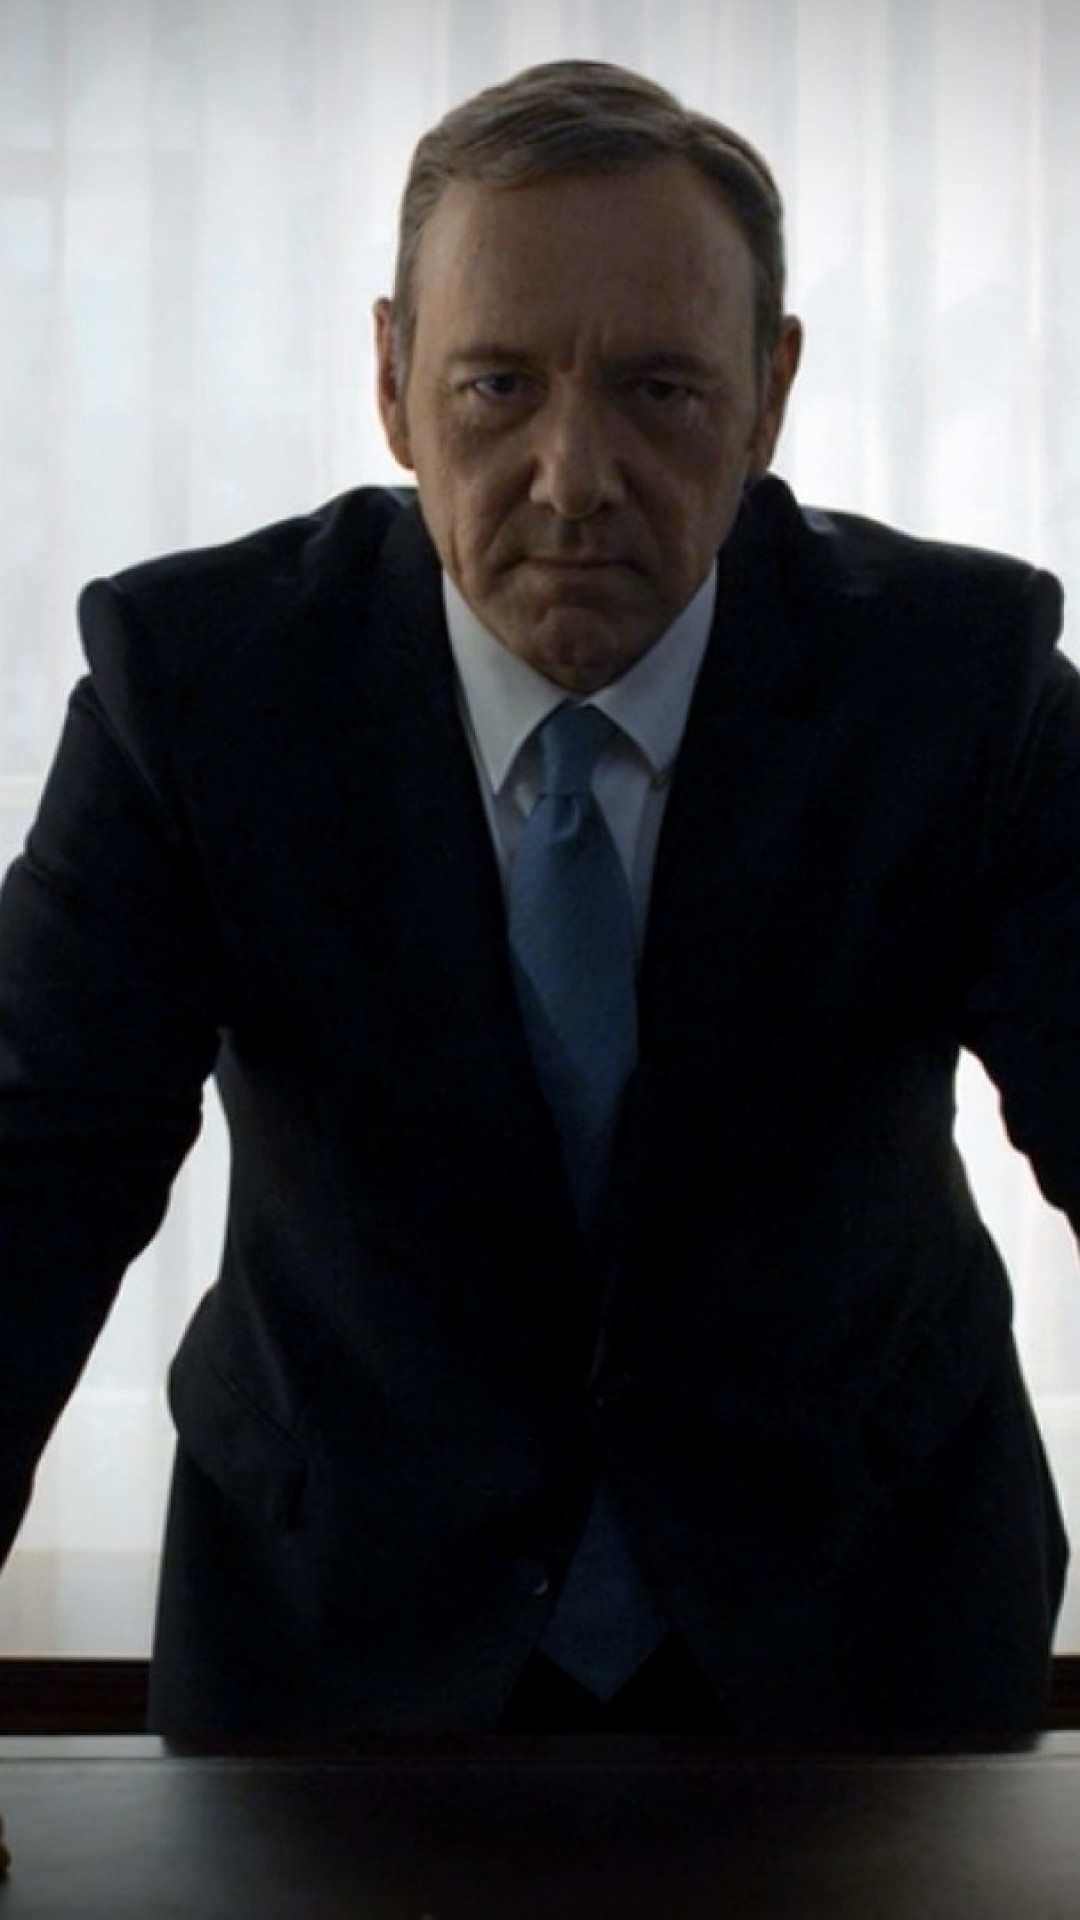 House Of Cards Wallpapers – Wallpaper Cave